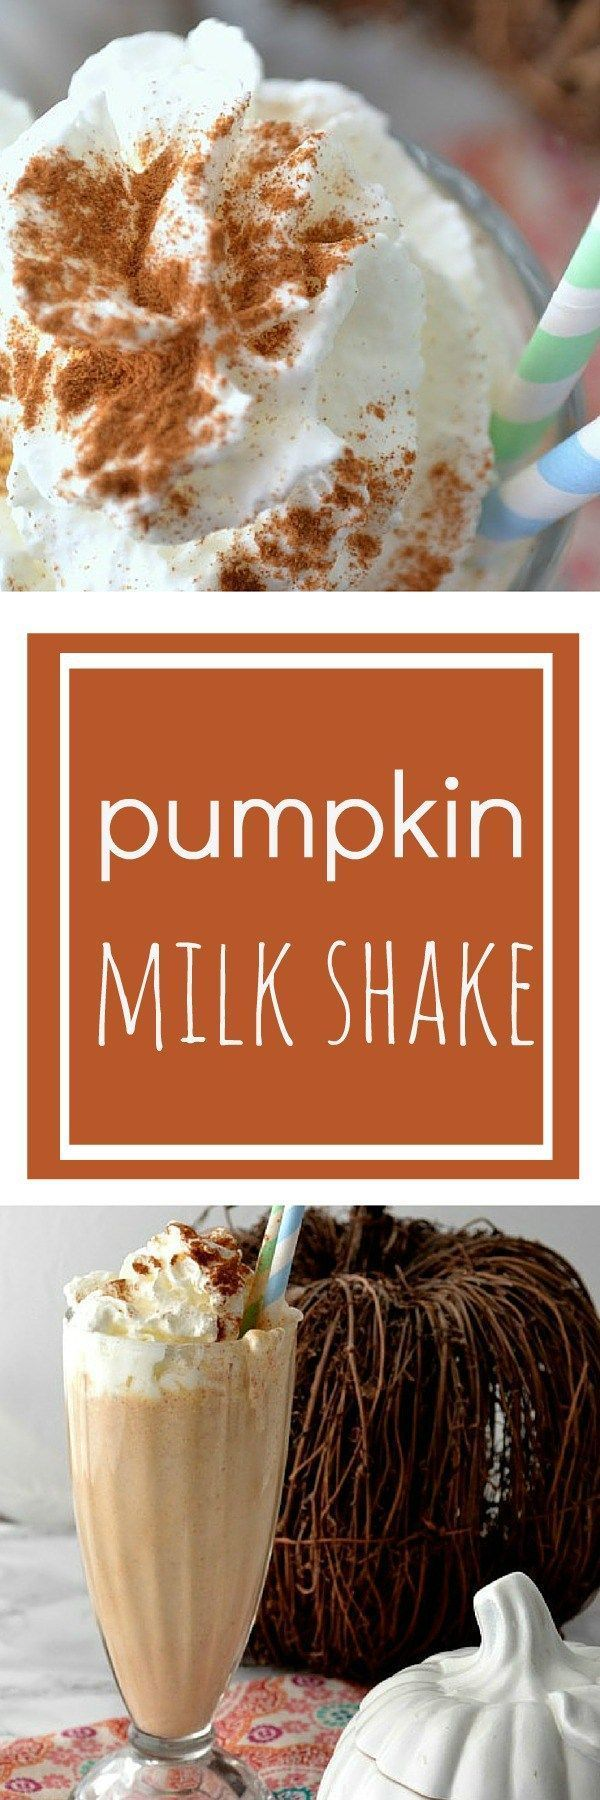 I'm addicted to pumpkin milkshakes now! This one is a great recipe for fall...or any time you feel like a milk shake.